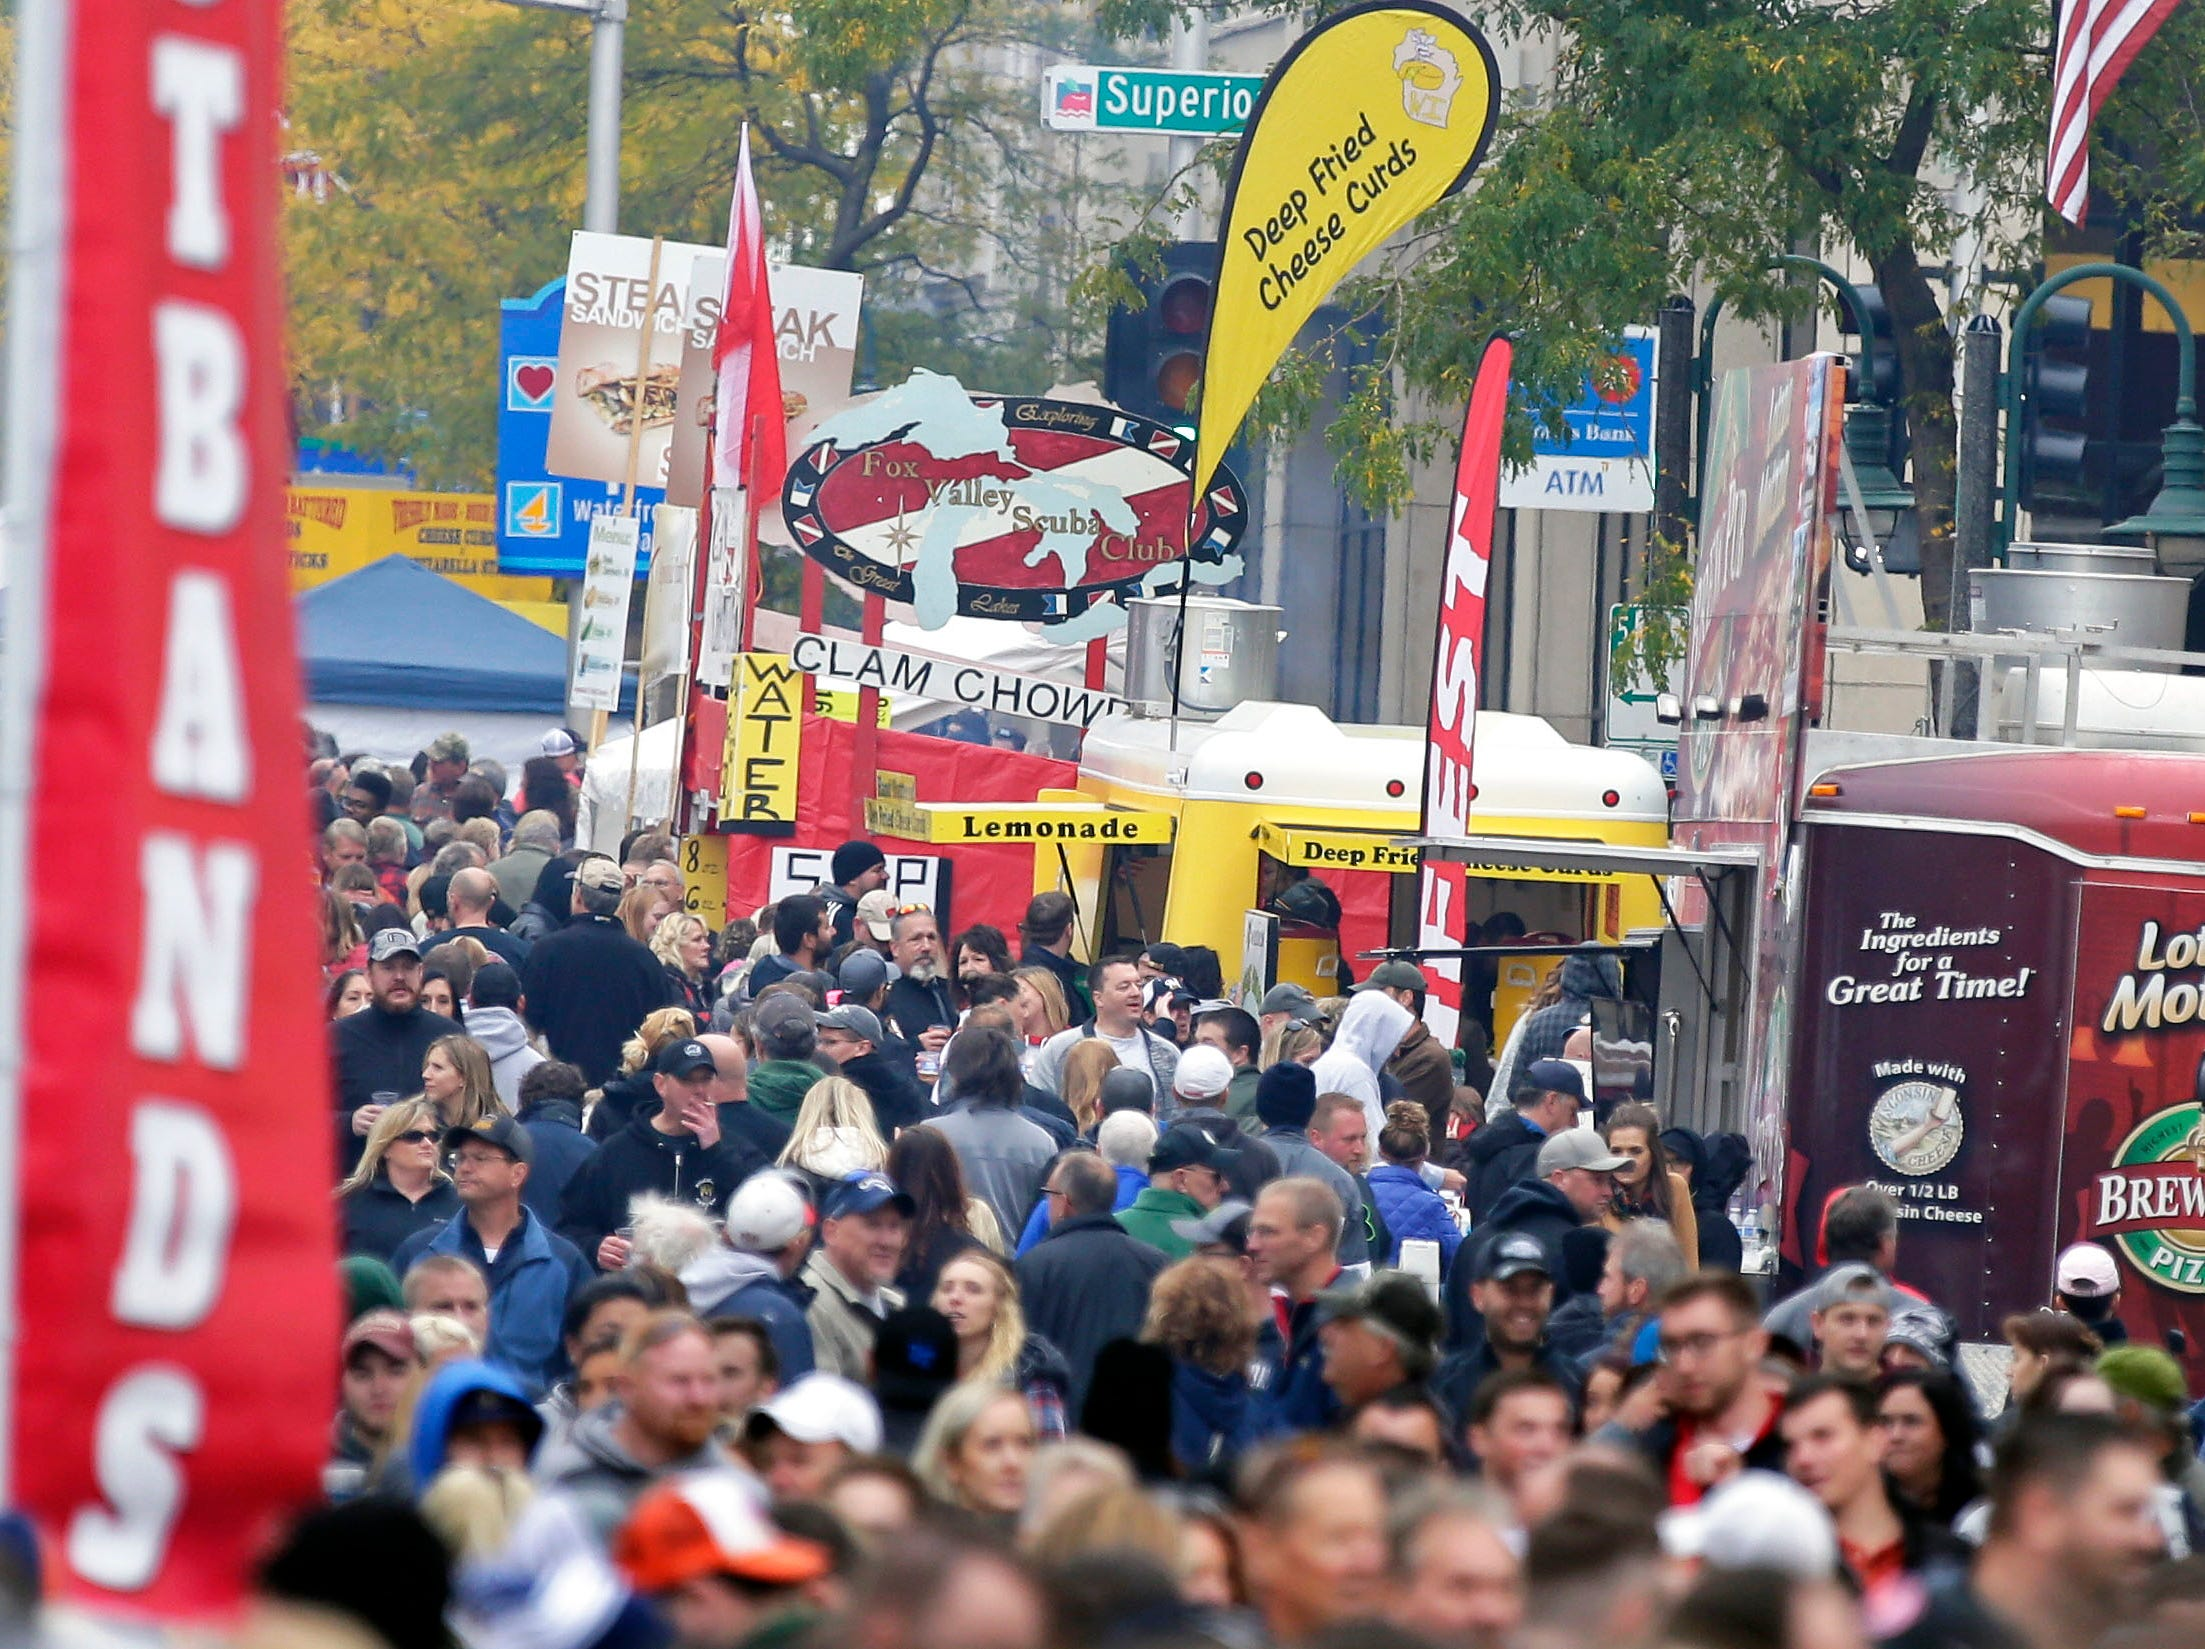 Octoberfest 2018 takes place Saturday, September 29, 2018, in downtown Appleton, Wis.